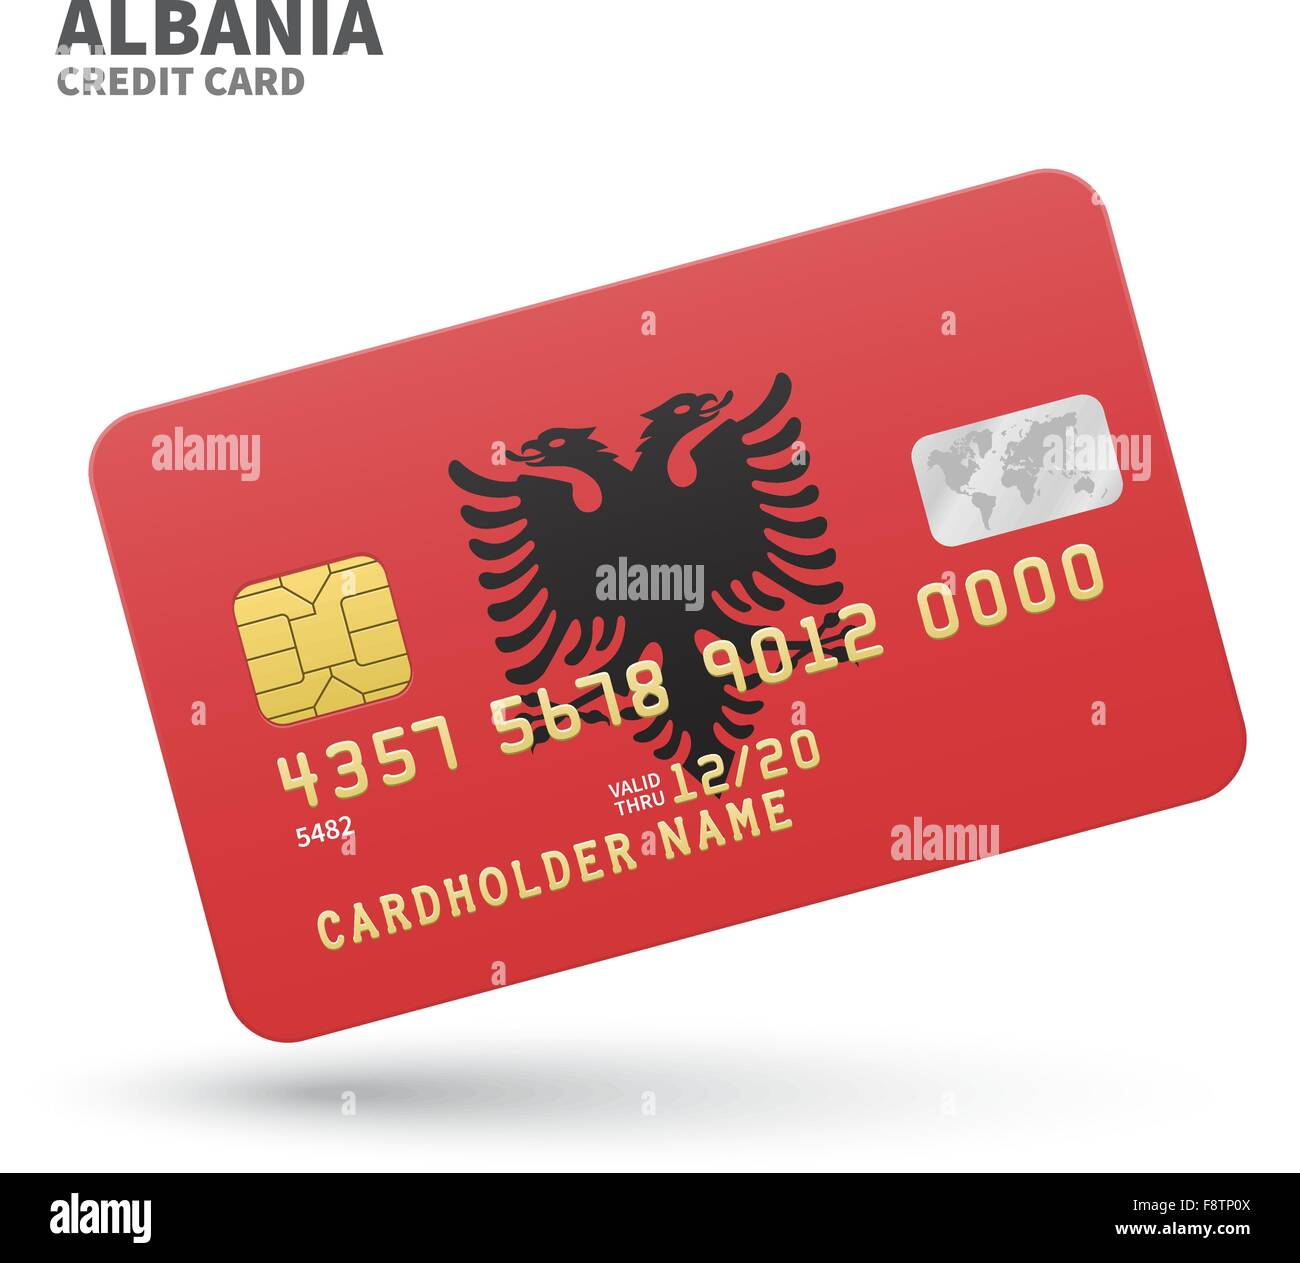 Credit card with Albania flag background for bank, presentations and business. Isolated on white - Stock Image